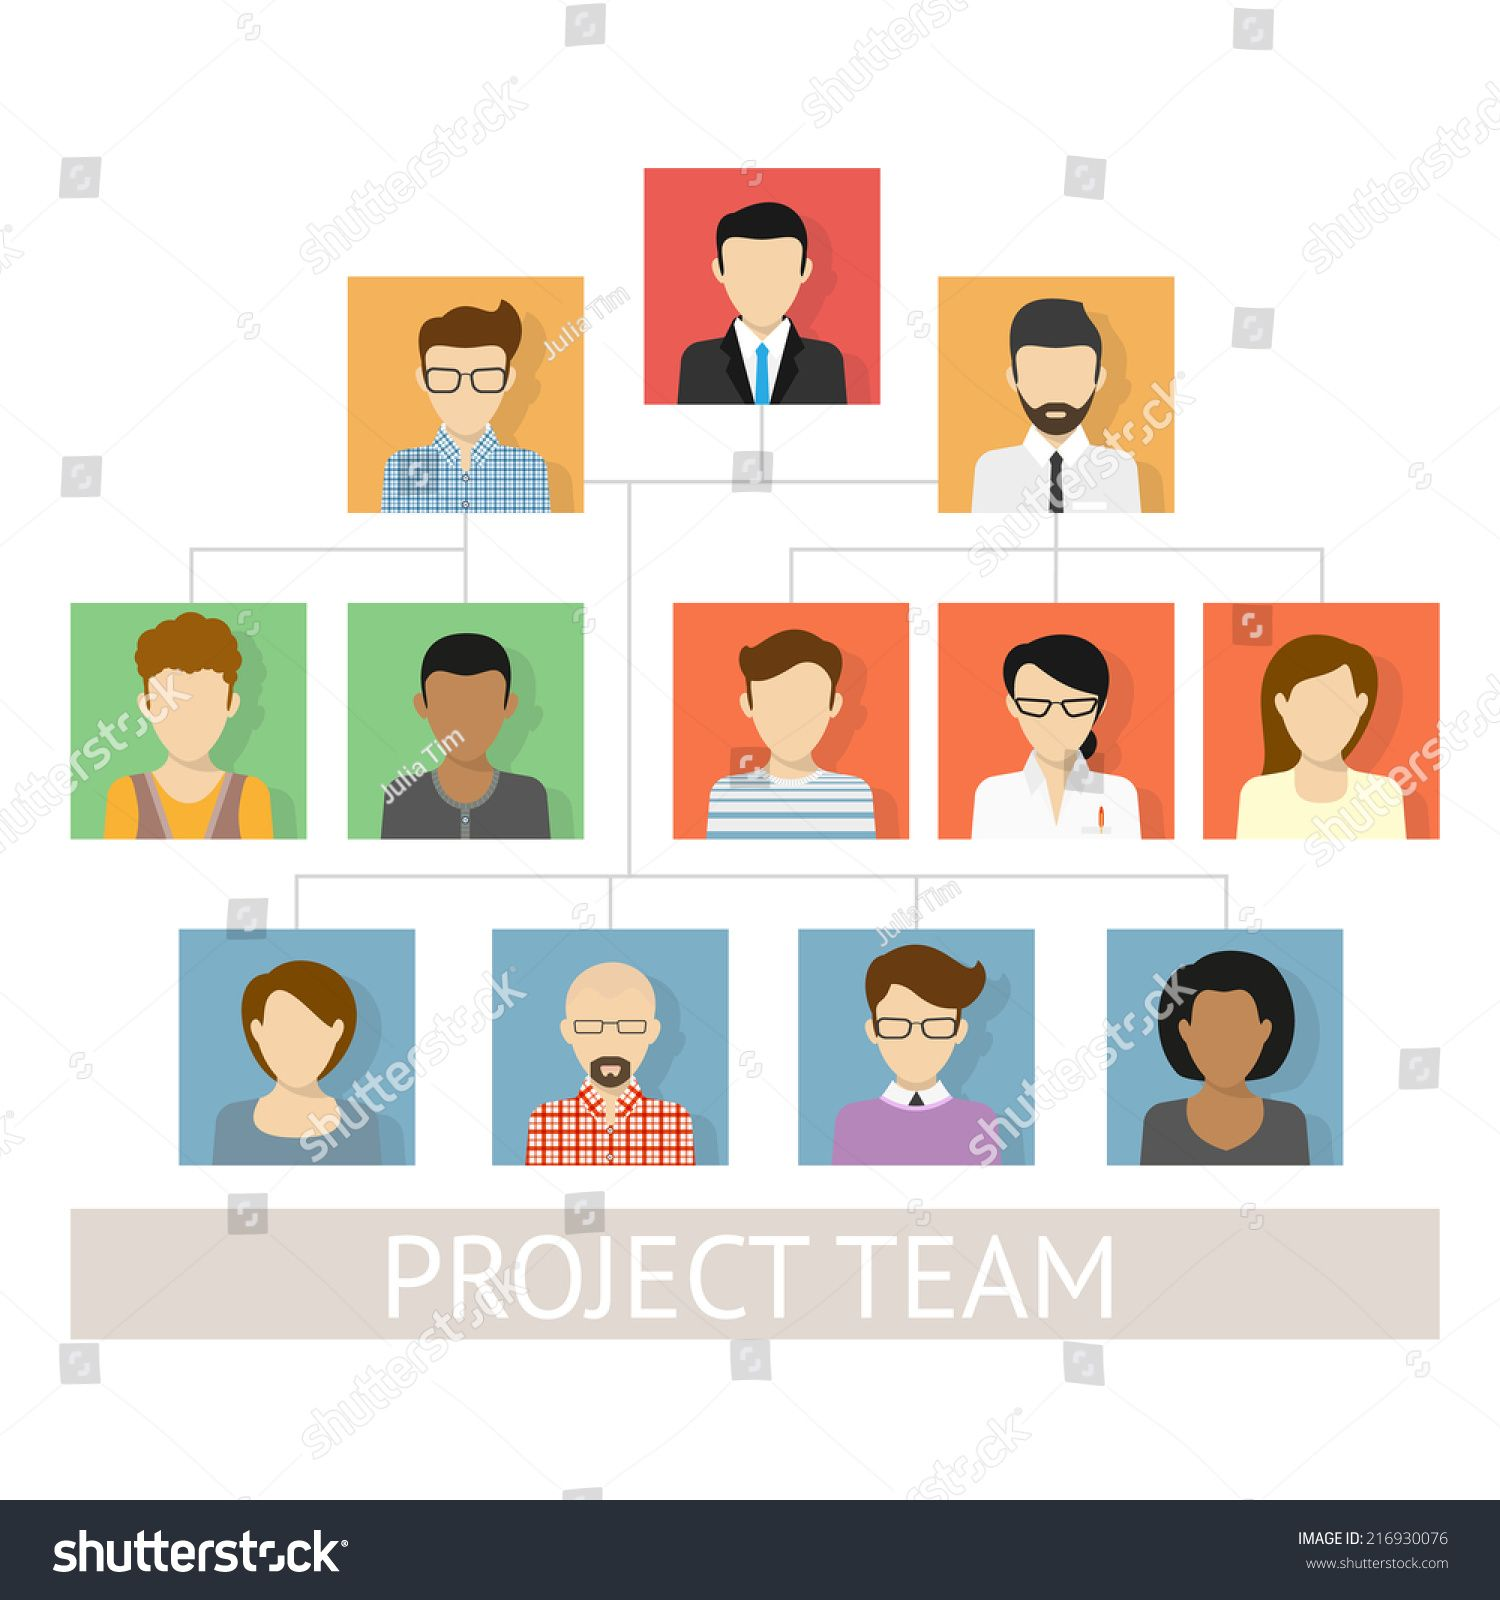 Project Team Organization Chart With Characters Avatars Icons Intranet Network Diagram Photo Album Diagrams Contains Leader And Business Colleagues Such As Designers Engineers